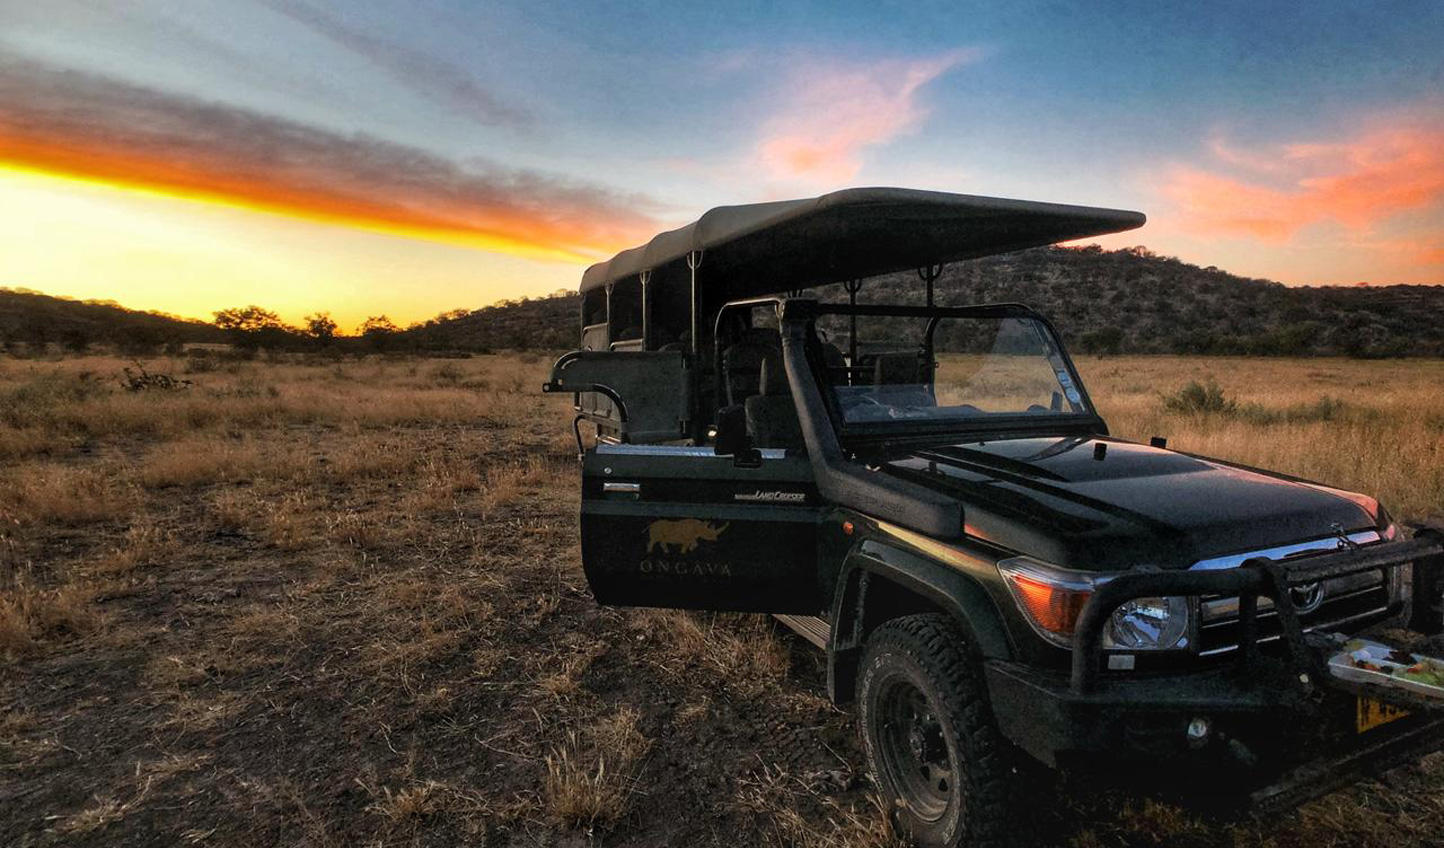 Hop into a 4x4 and venture out on safari